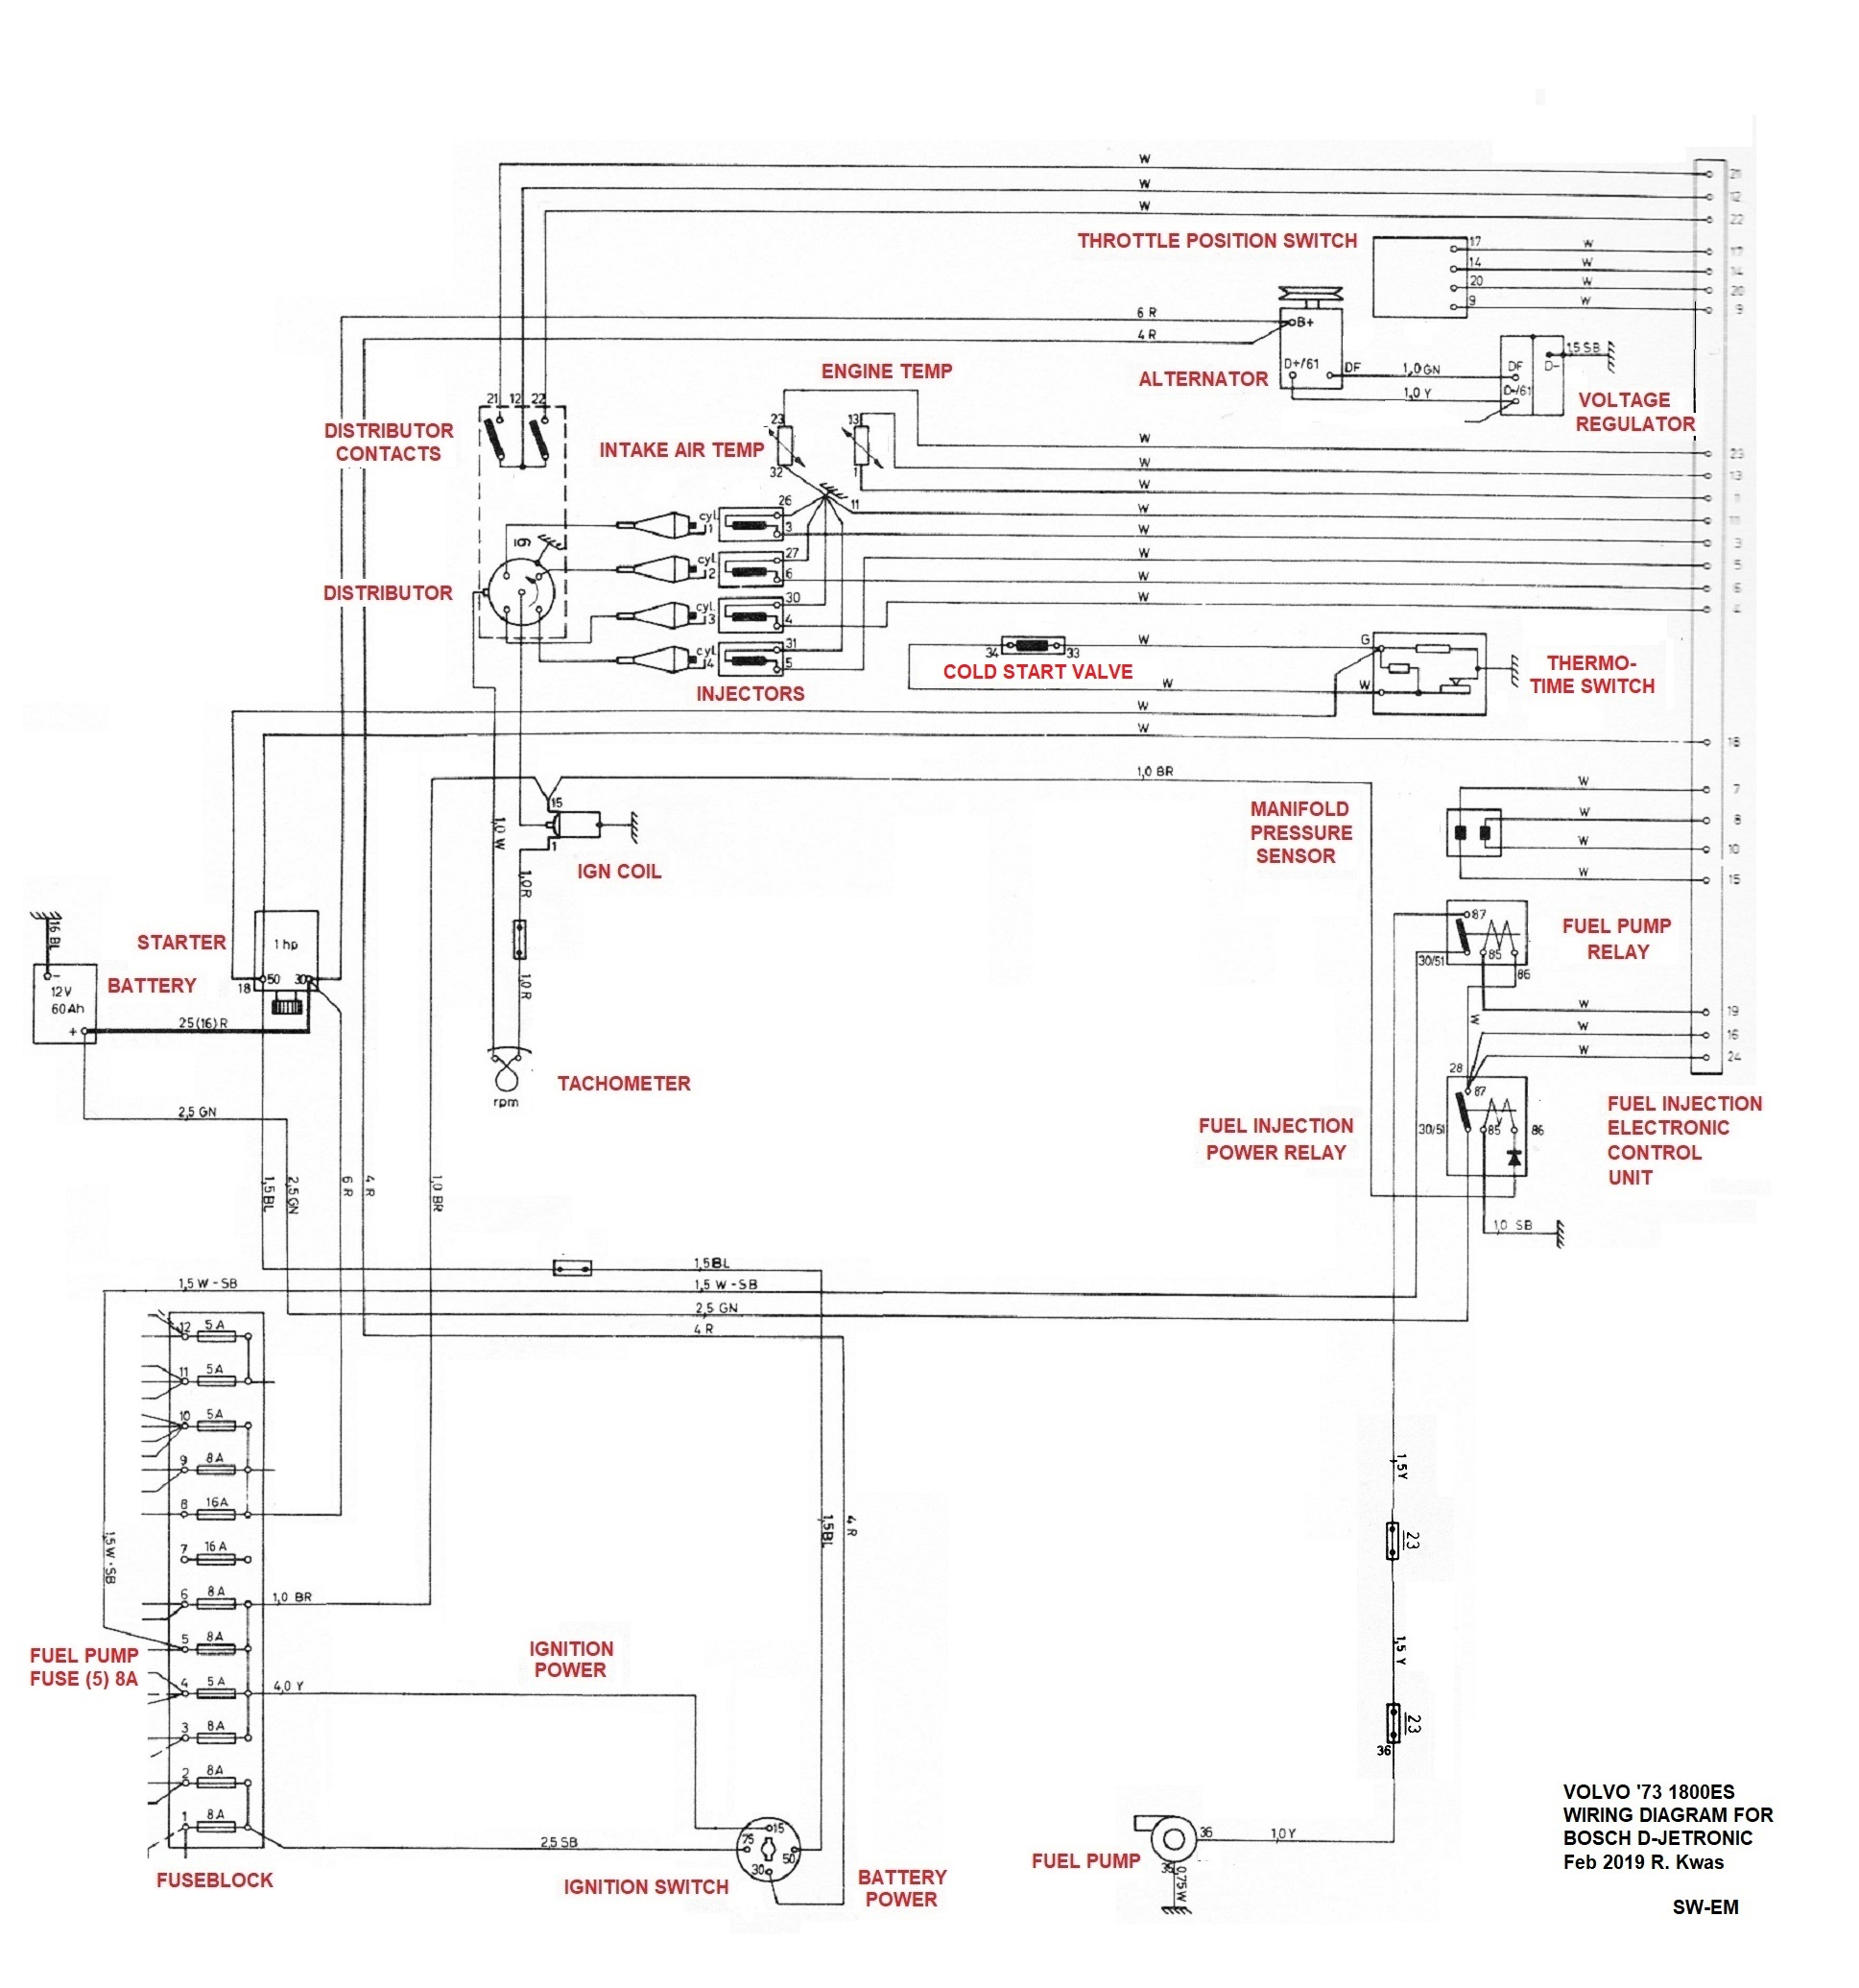 hight resolution of  73 1800es fuel injection wiring diagram late system with thermo time switch for mixture enrichment 72 73